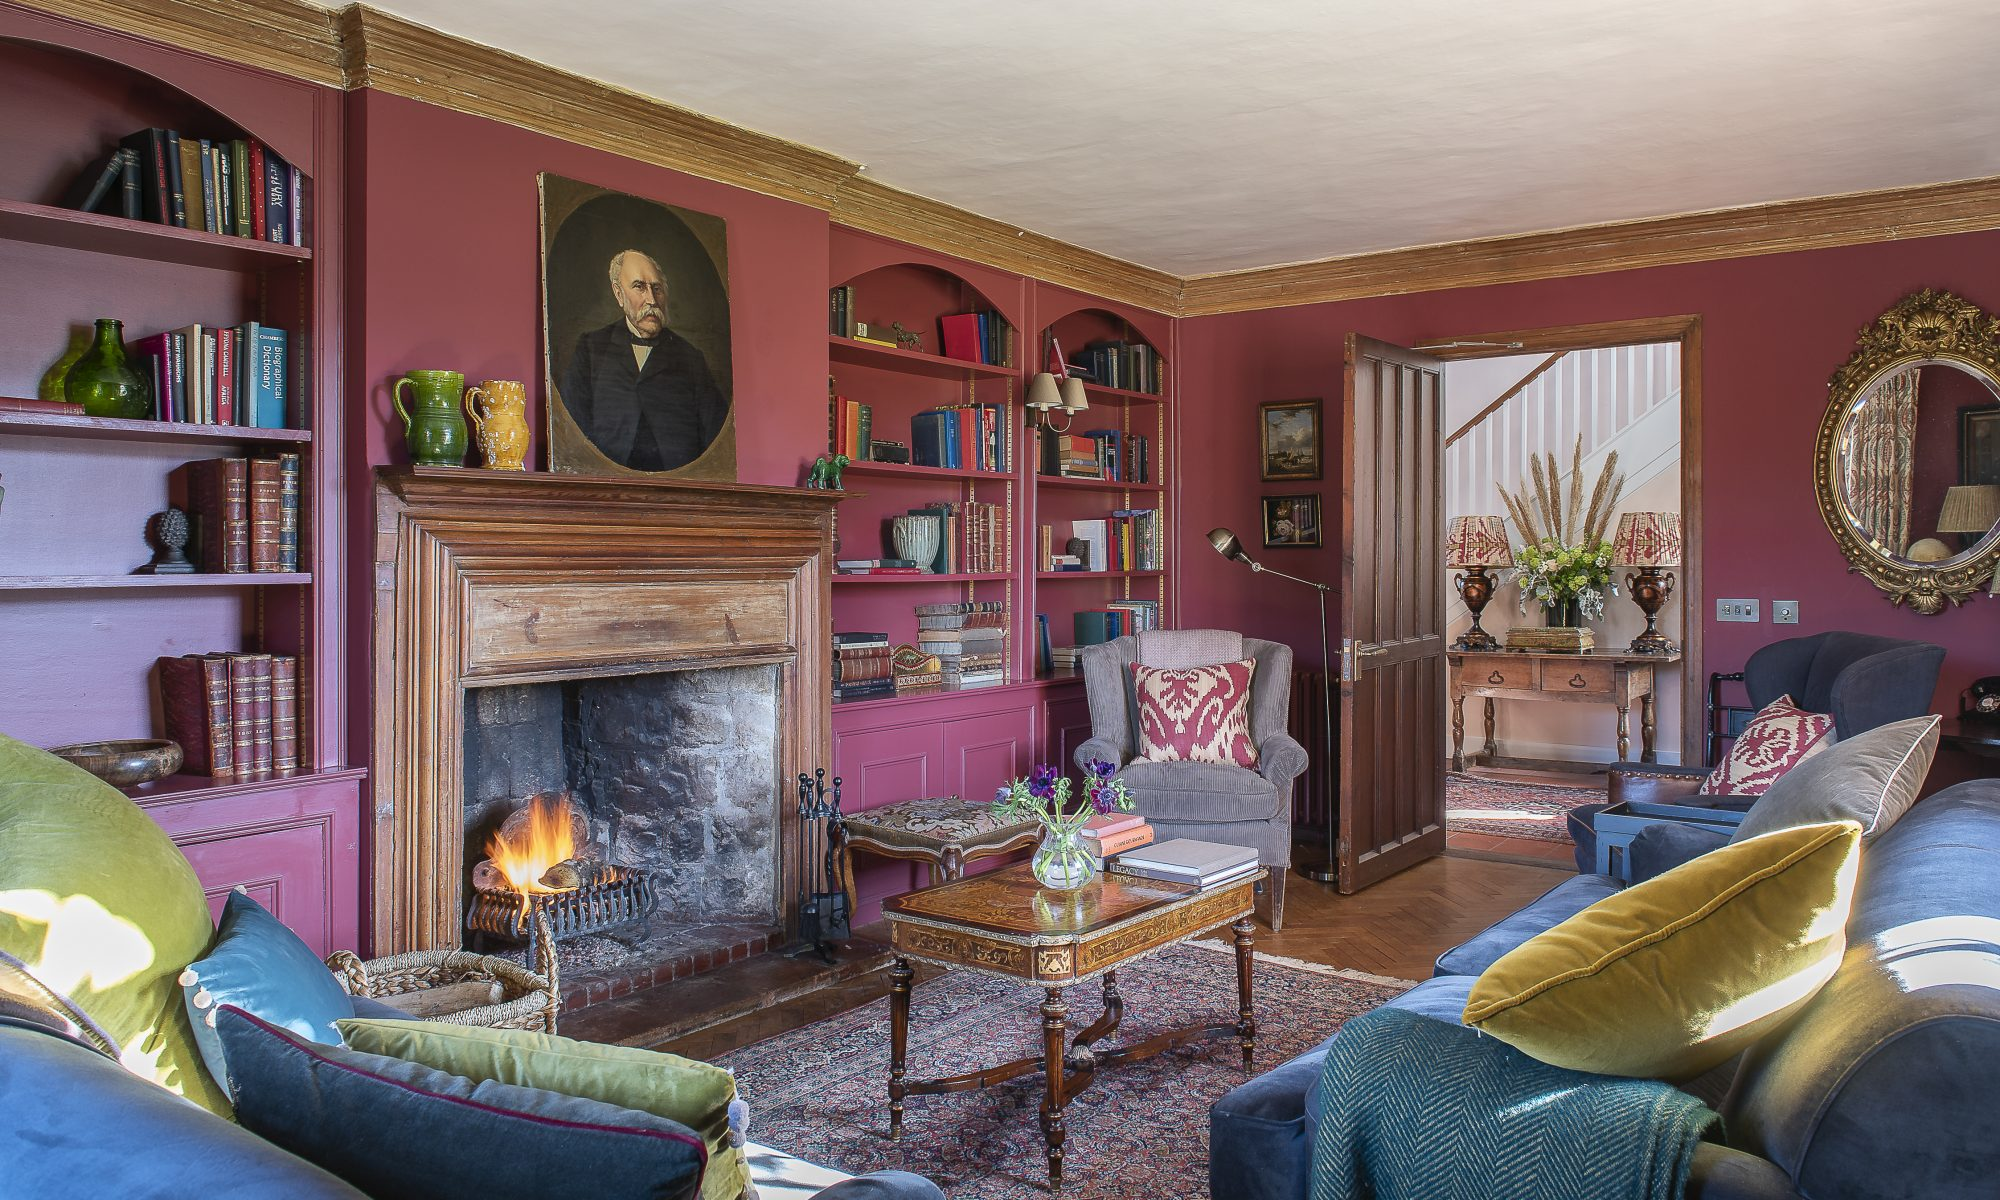 The walls in the drawing room are painted in Bone by Farrow & Ball